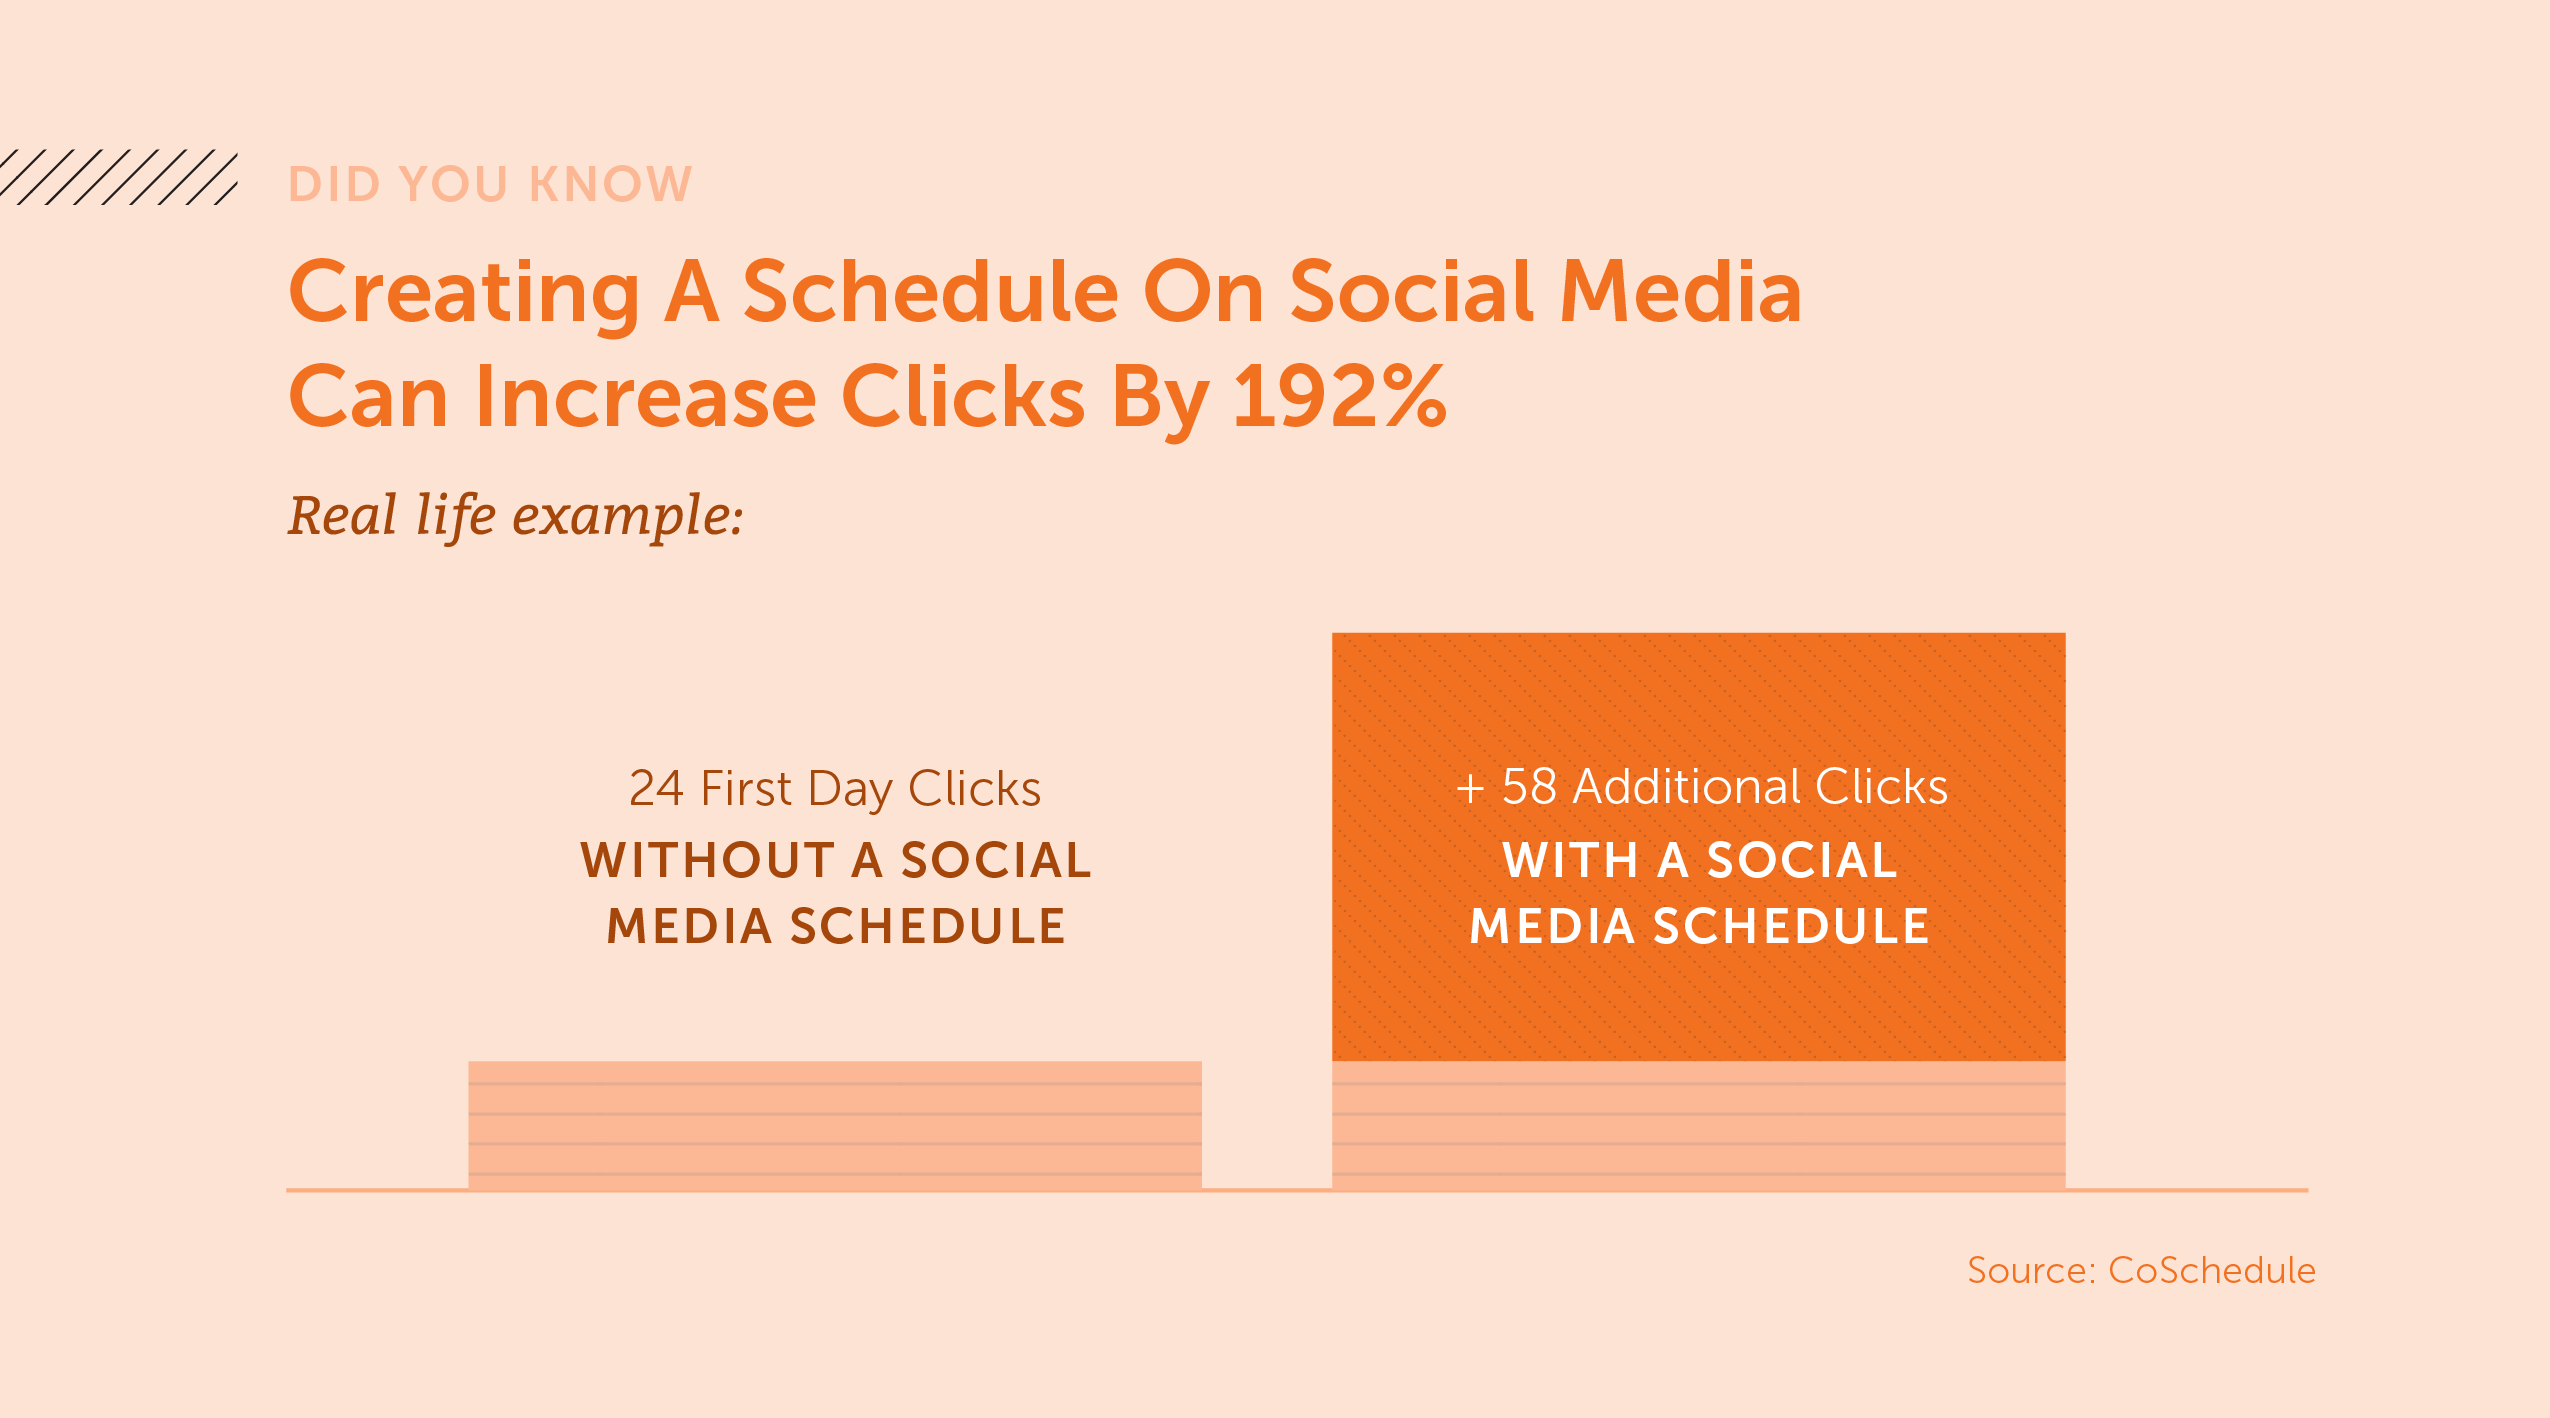 Did you know creating a schedule on social media can increase clicks by 192%